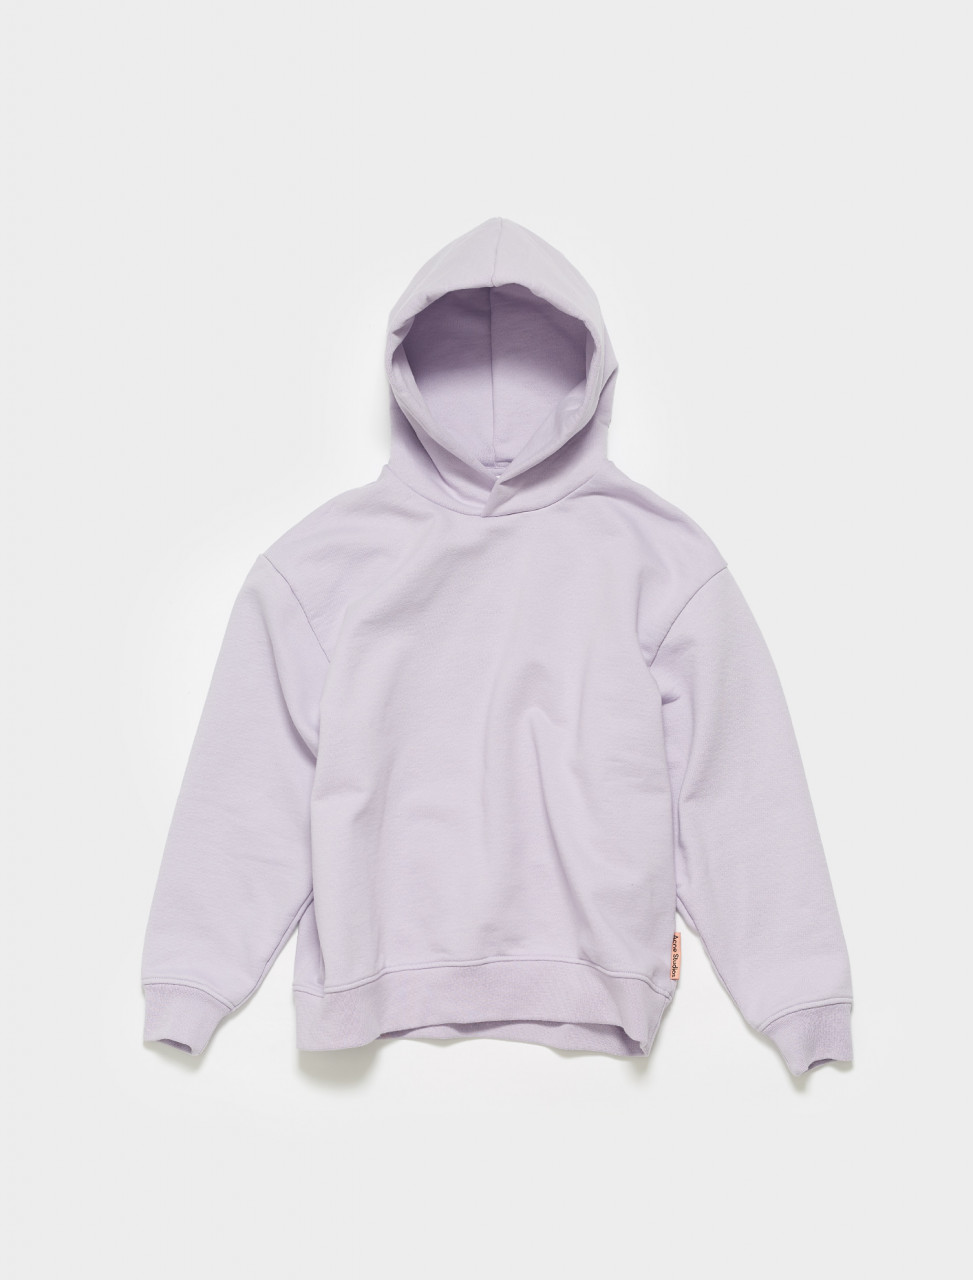 AI0080-ADH ACNE STUDIOS FEIRDRE PINK LABEL HOODIE IN LAVENDER PURPLE